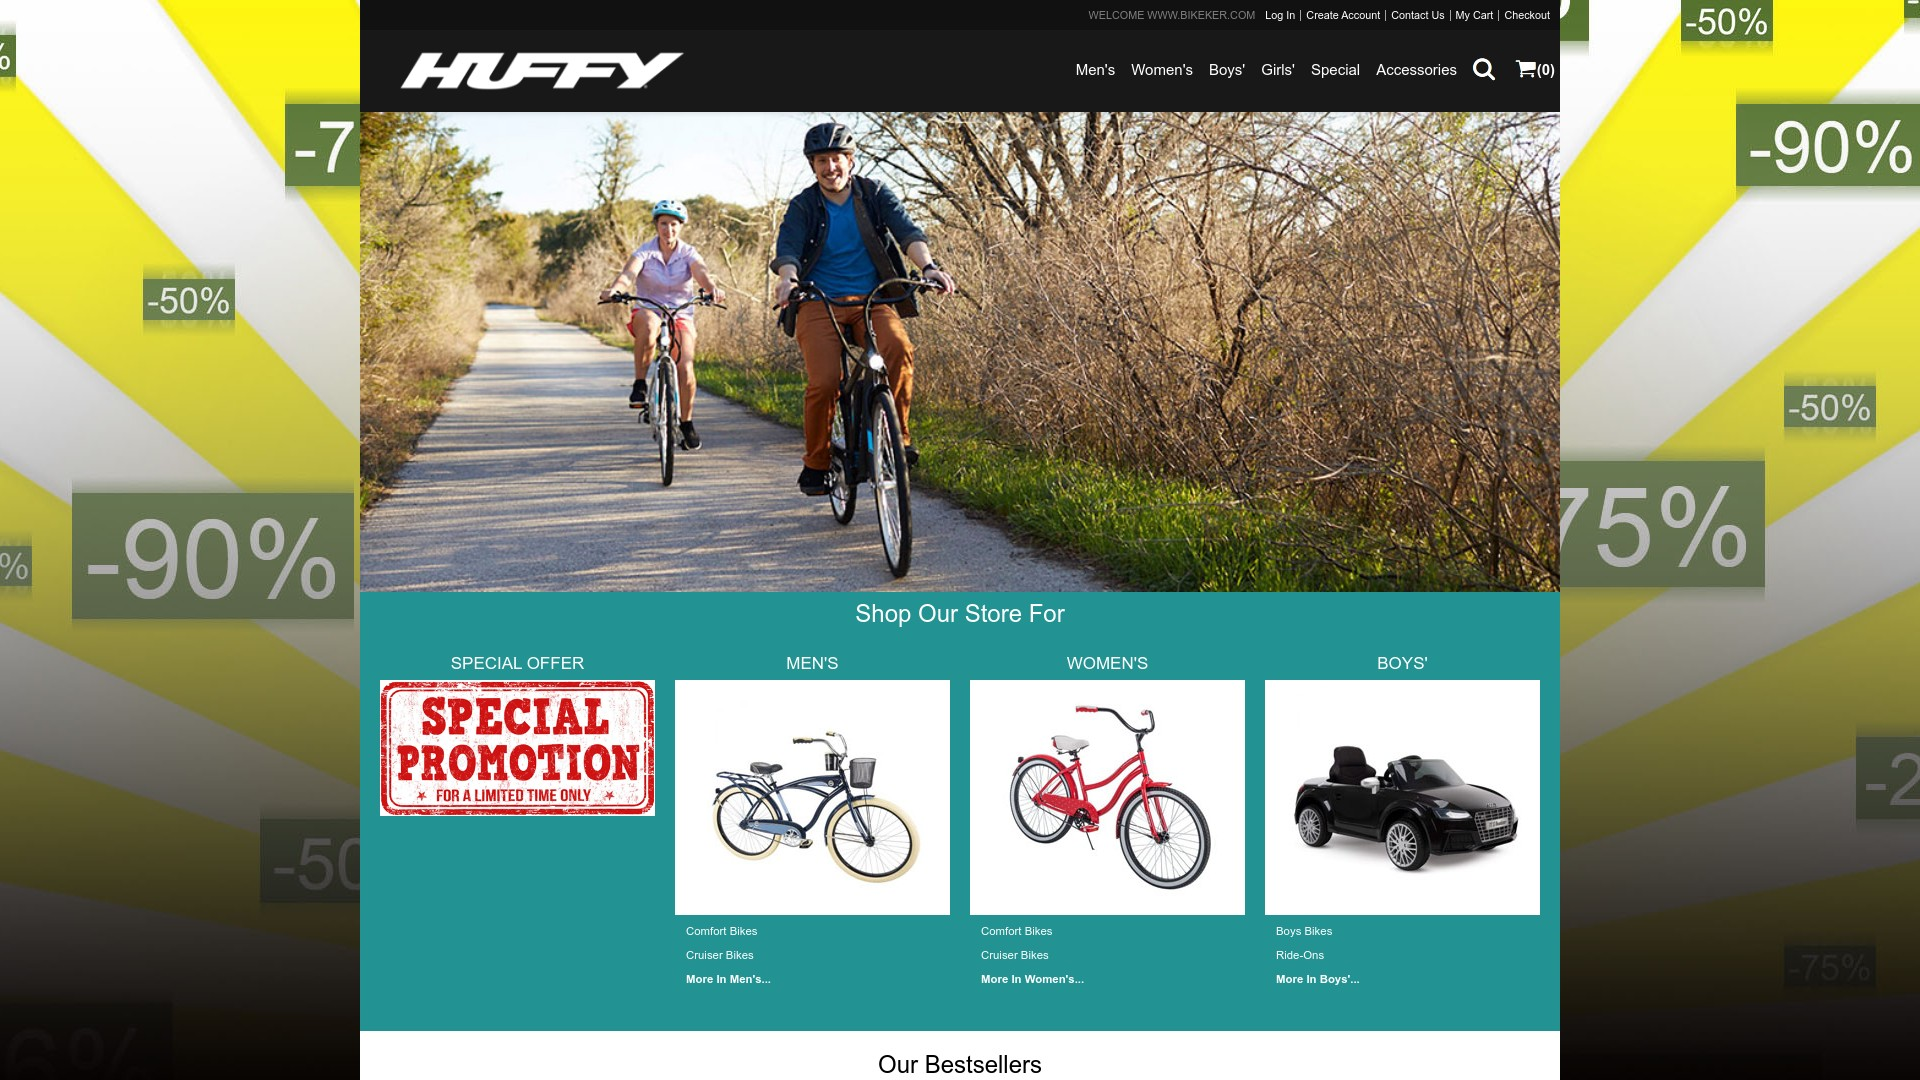 Bikeker Reviews  is The Online Store a Scam?